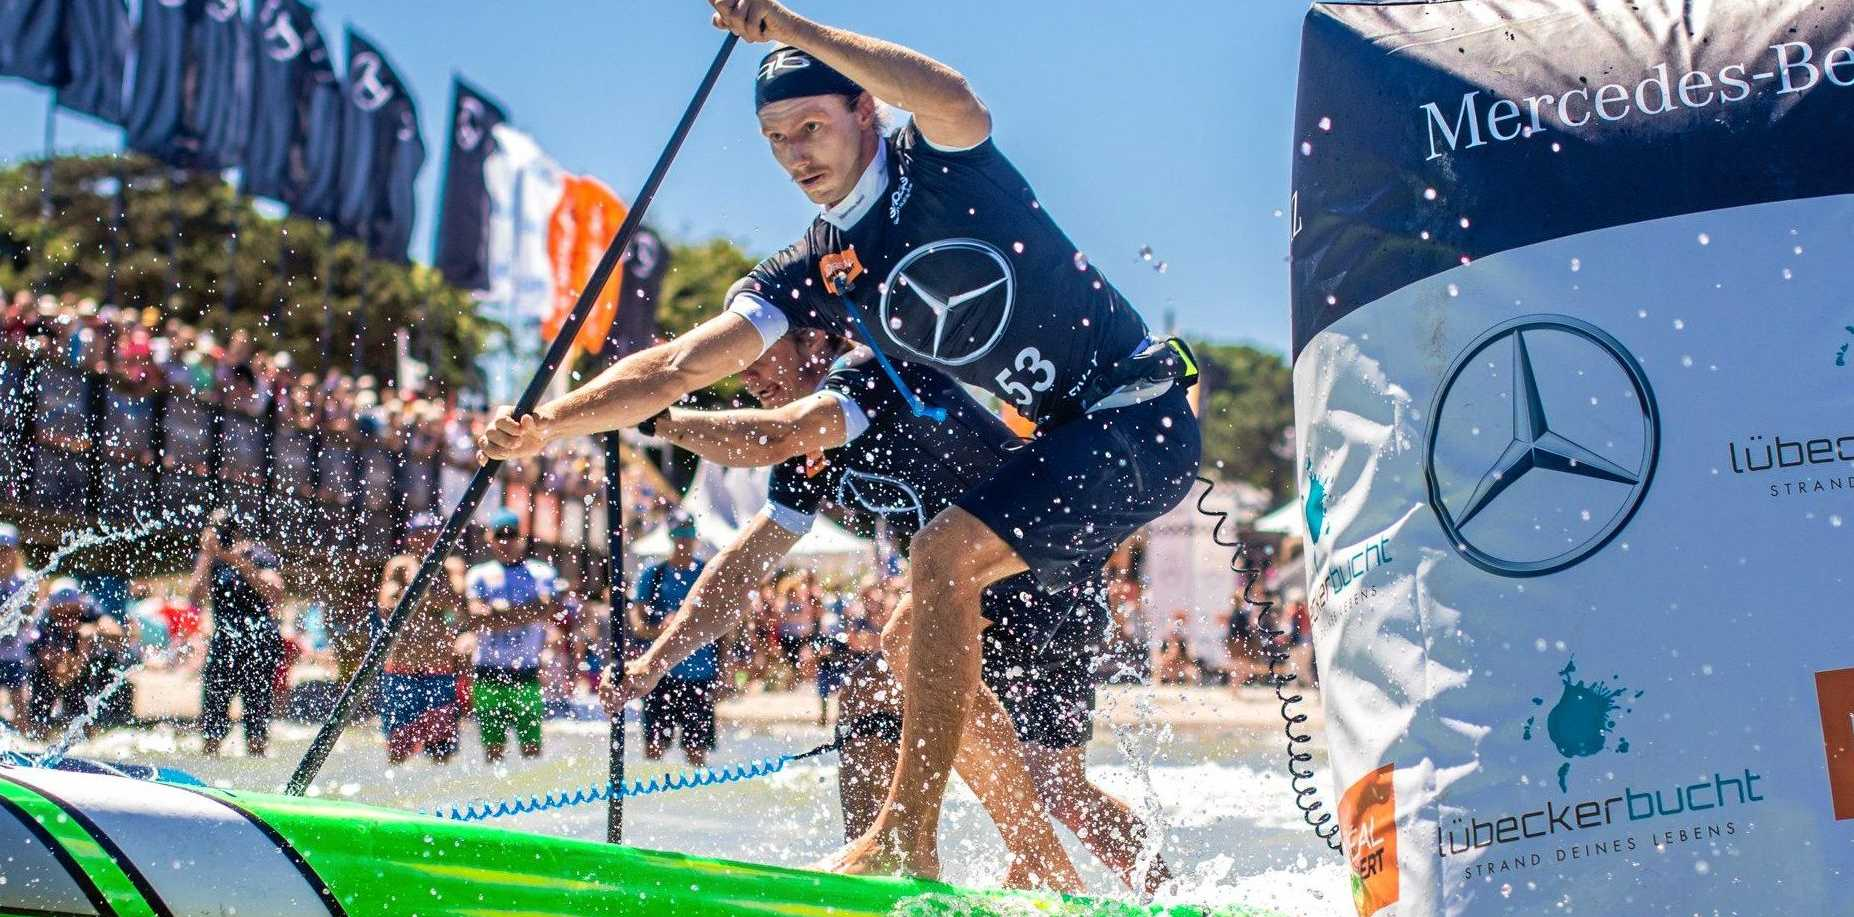 Lincoln Dews in action at the Mercedes-Benz SUP World Cup recently.